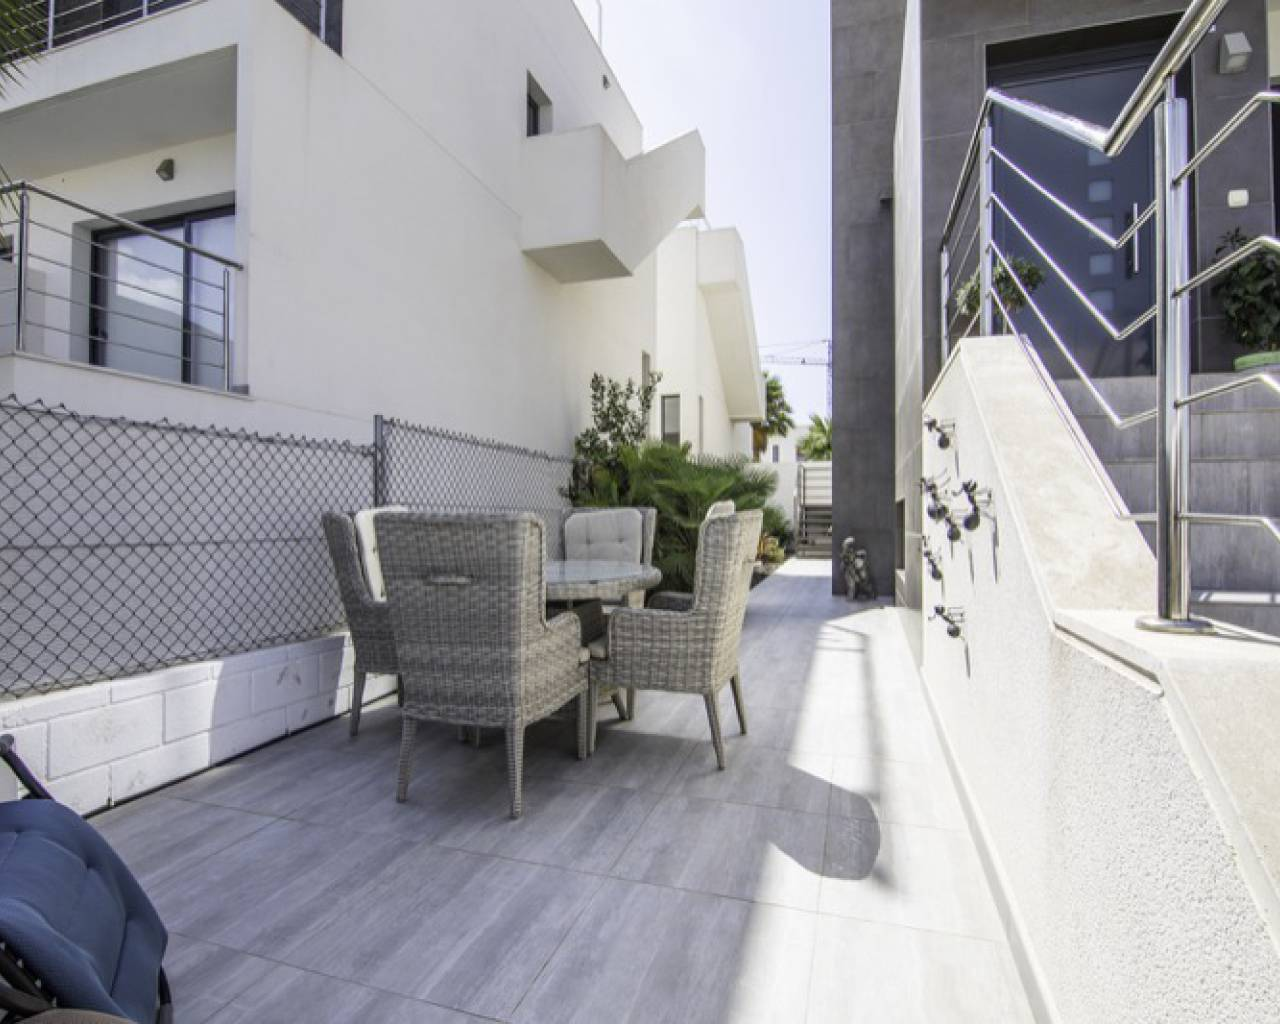 Sale - Semi Detached Villa - Alicante - Benijófar